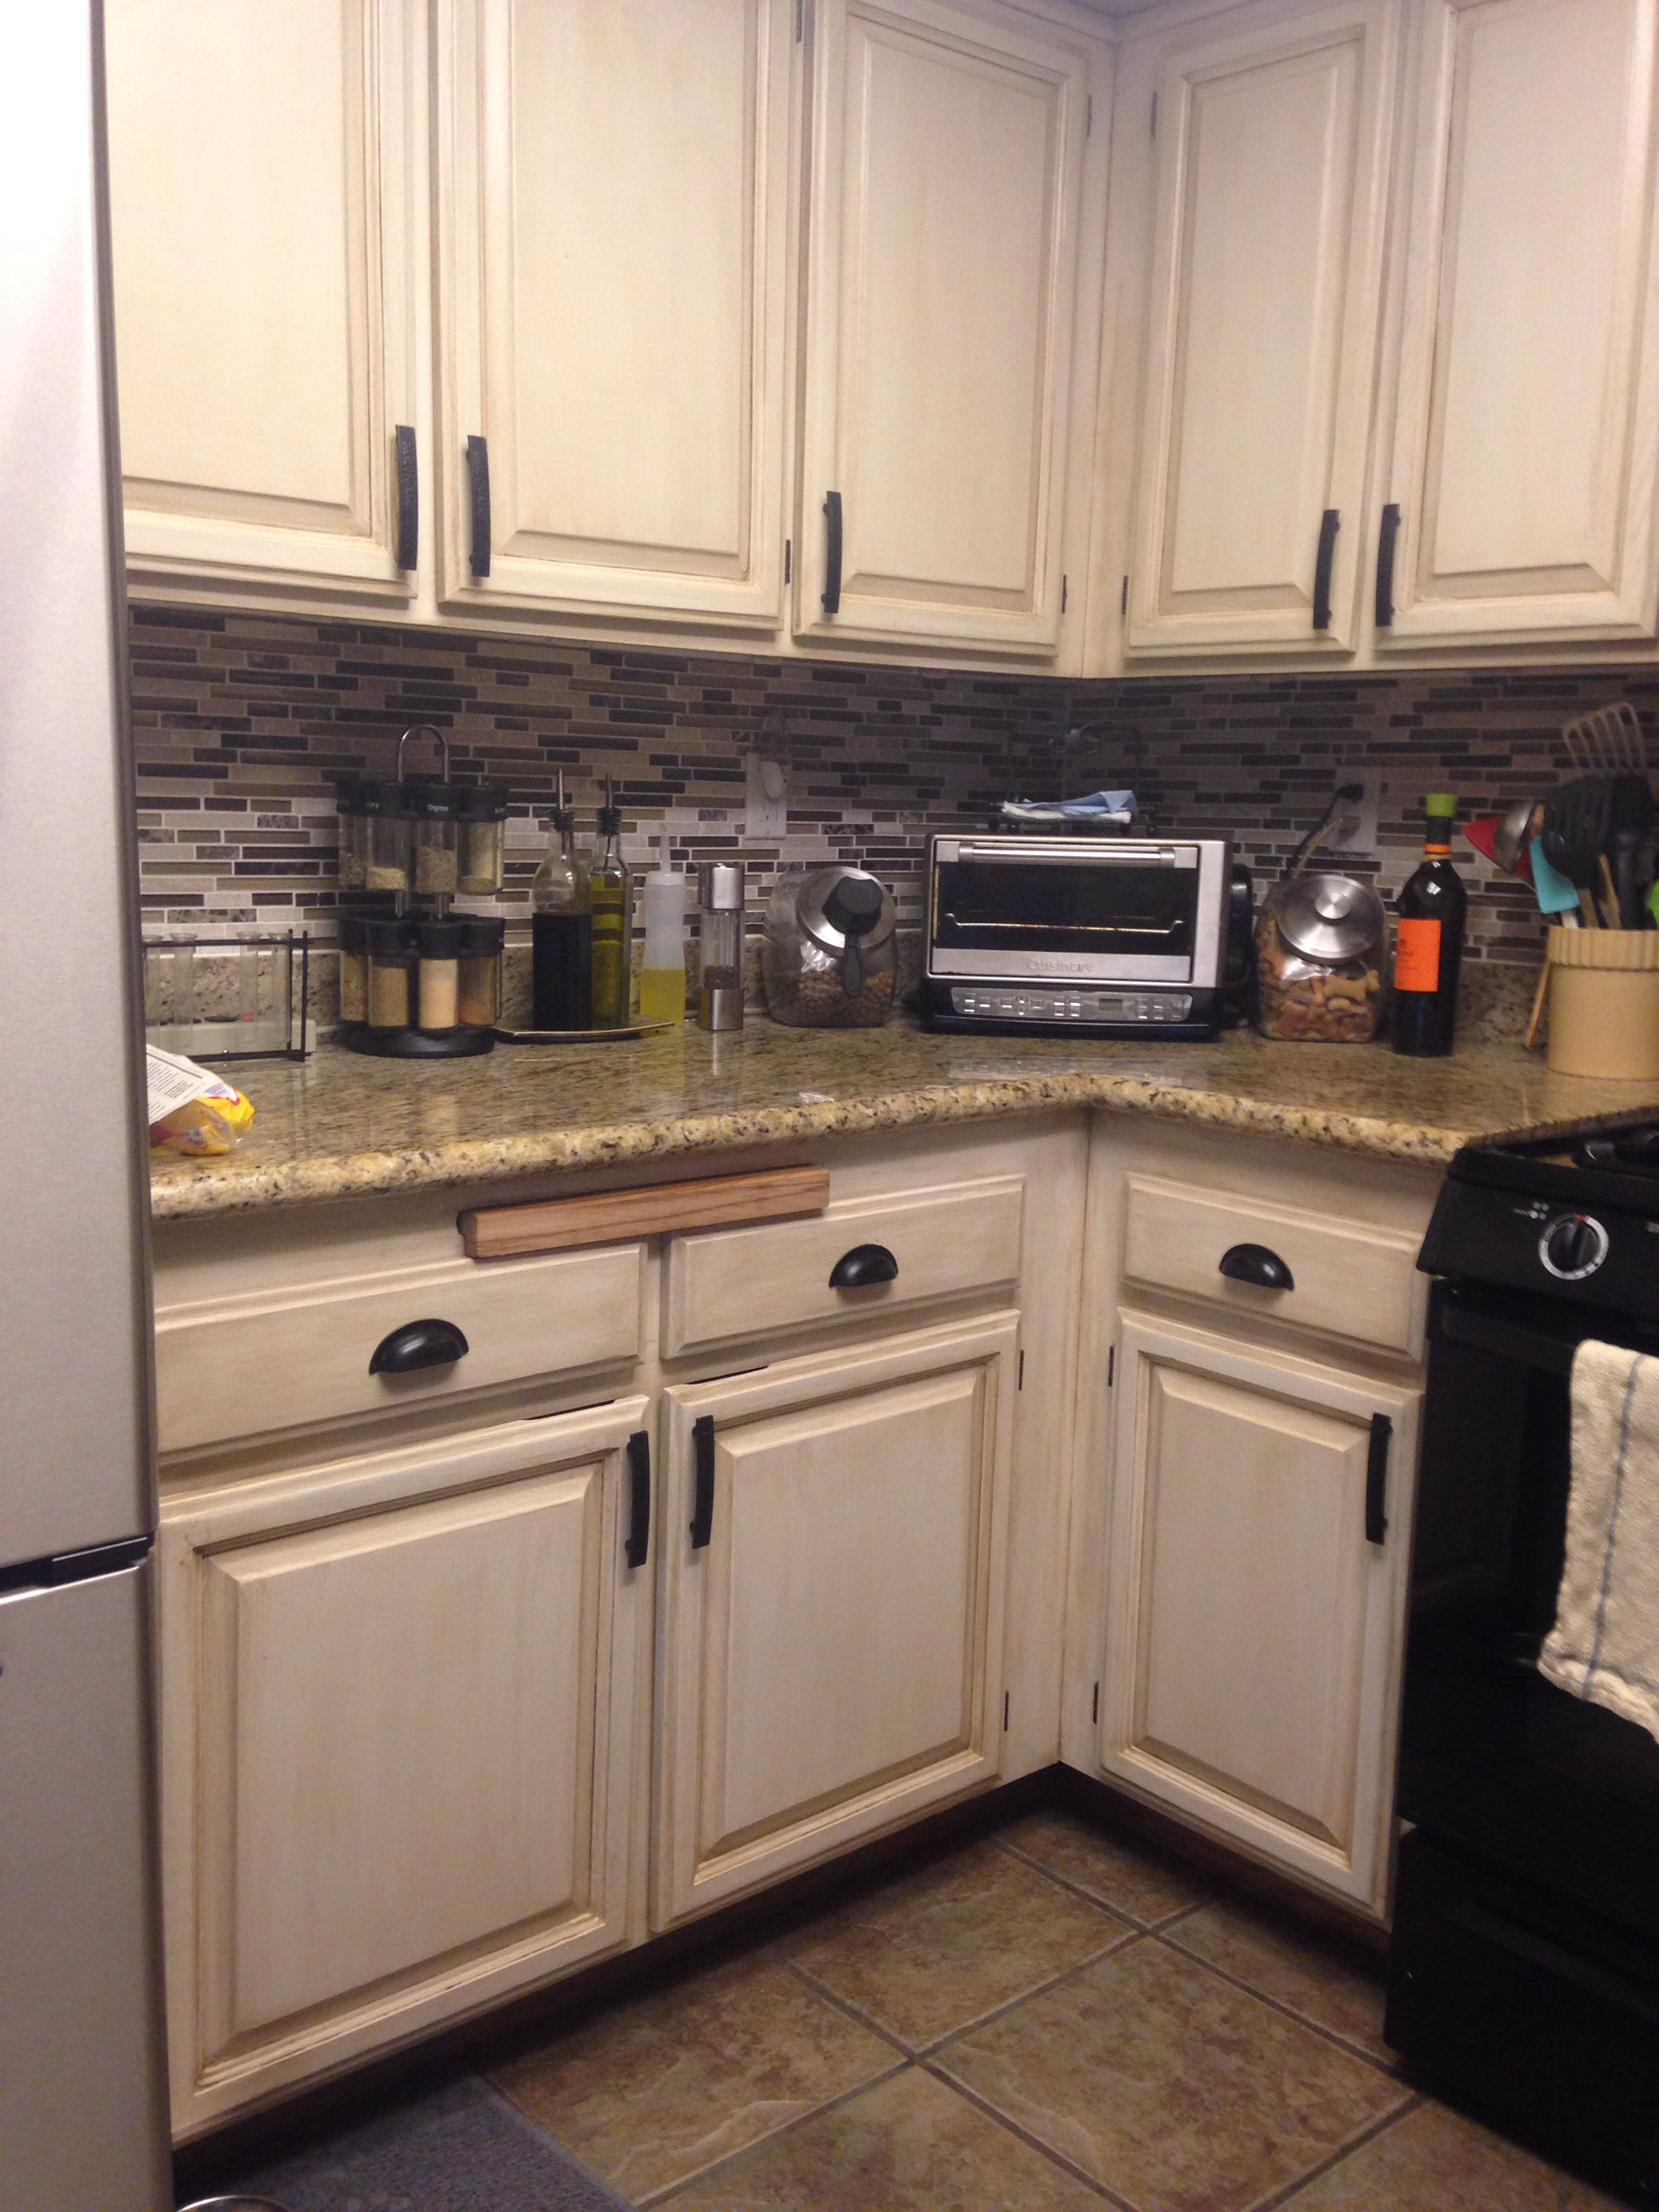 Redo My Kitchen Island Designs With Seating Oak Cabinet Was Typical 90s White Tile Counters And No Backsplash We Started Out Finding That Wild At Costco It Kinda